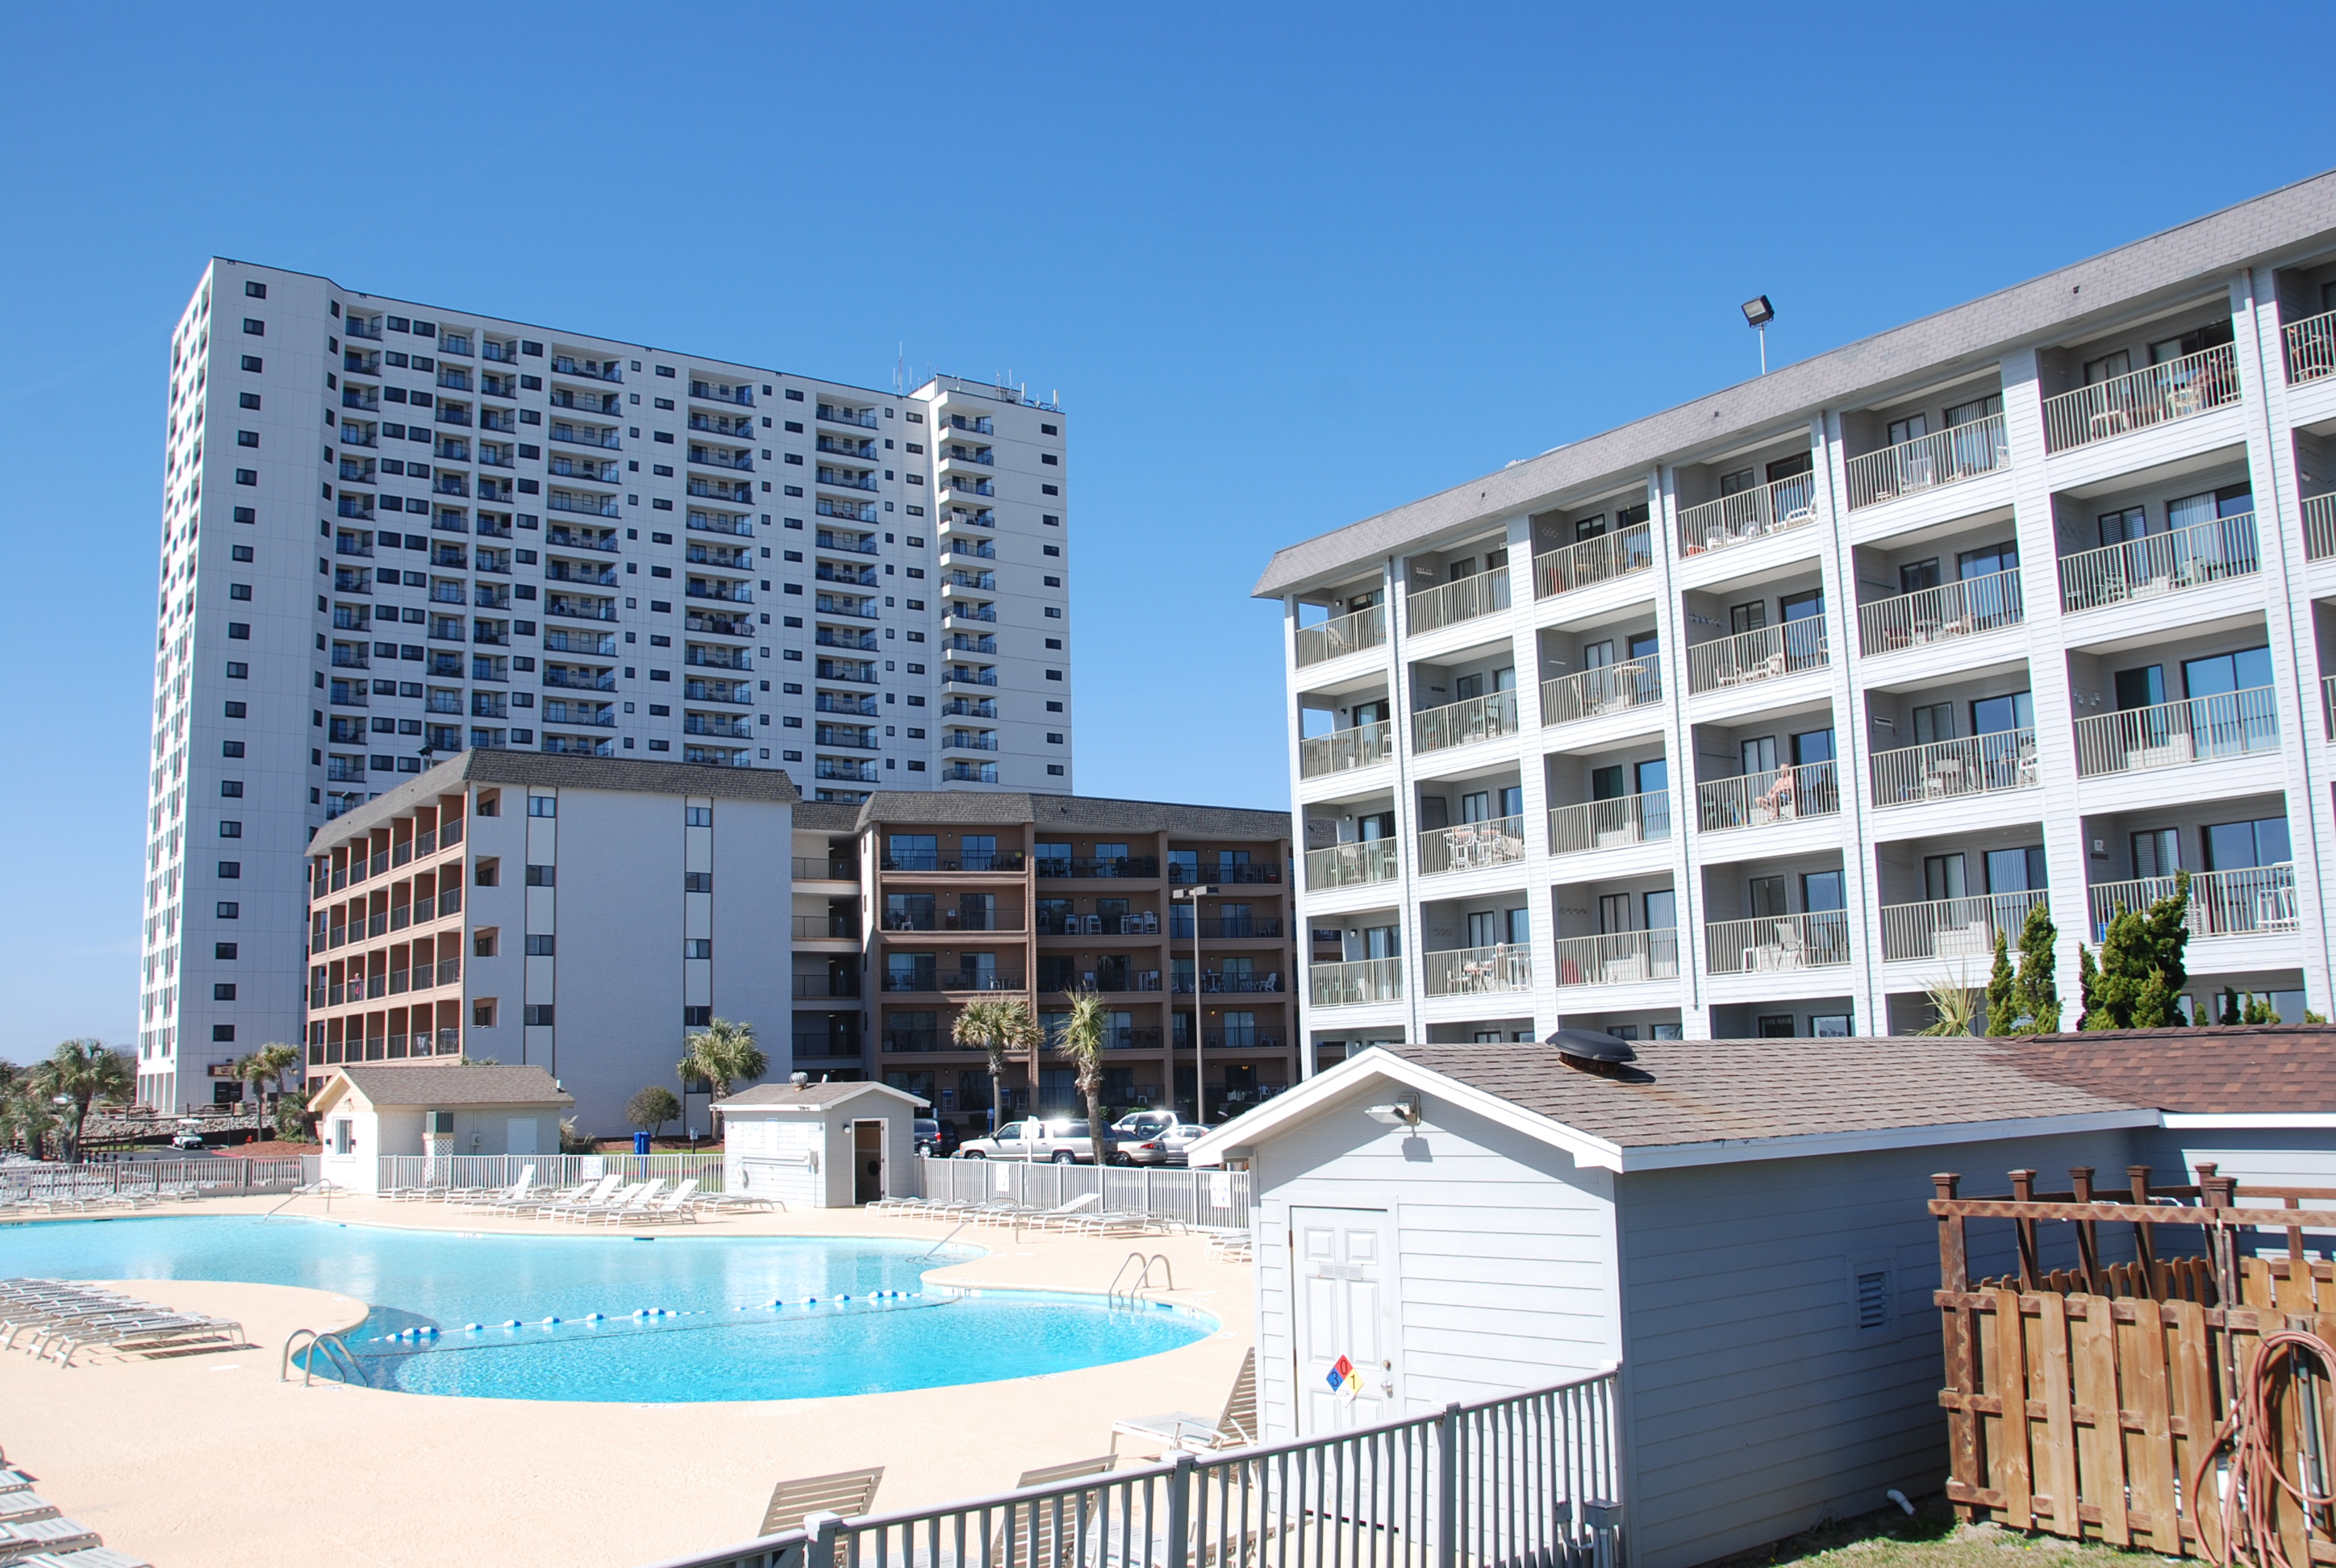 Ocean pool villas myrtle beach resort - 4 bedroom resorts in myrtle beach sc ...